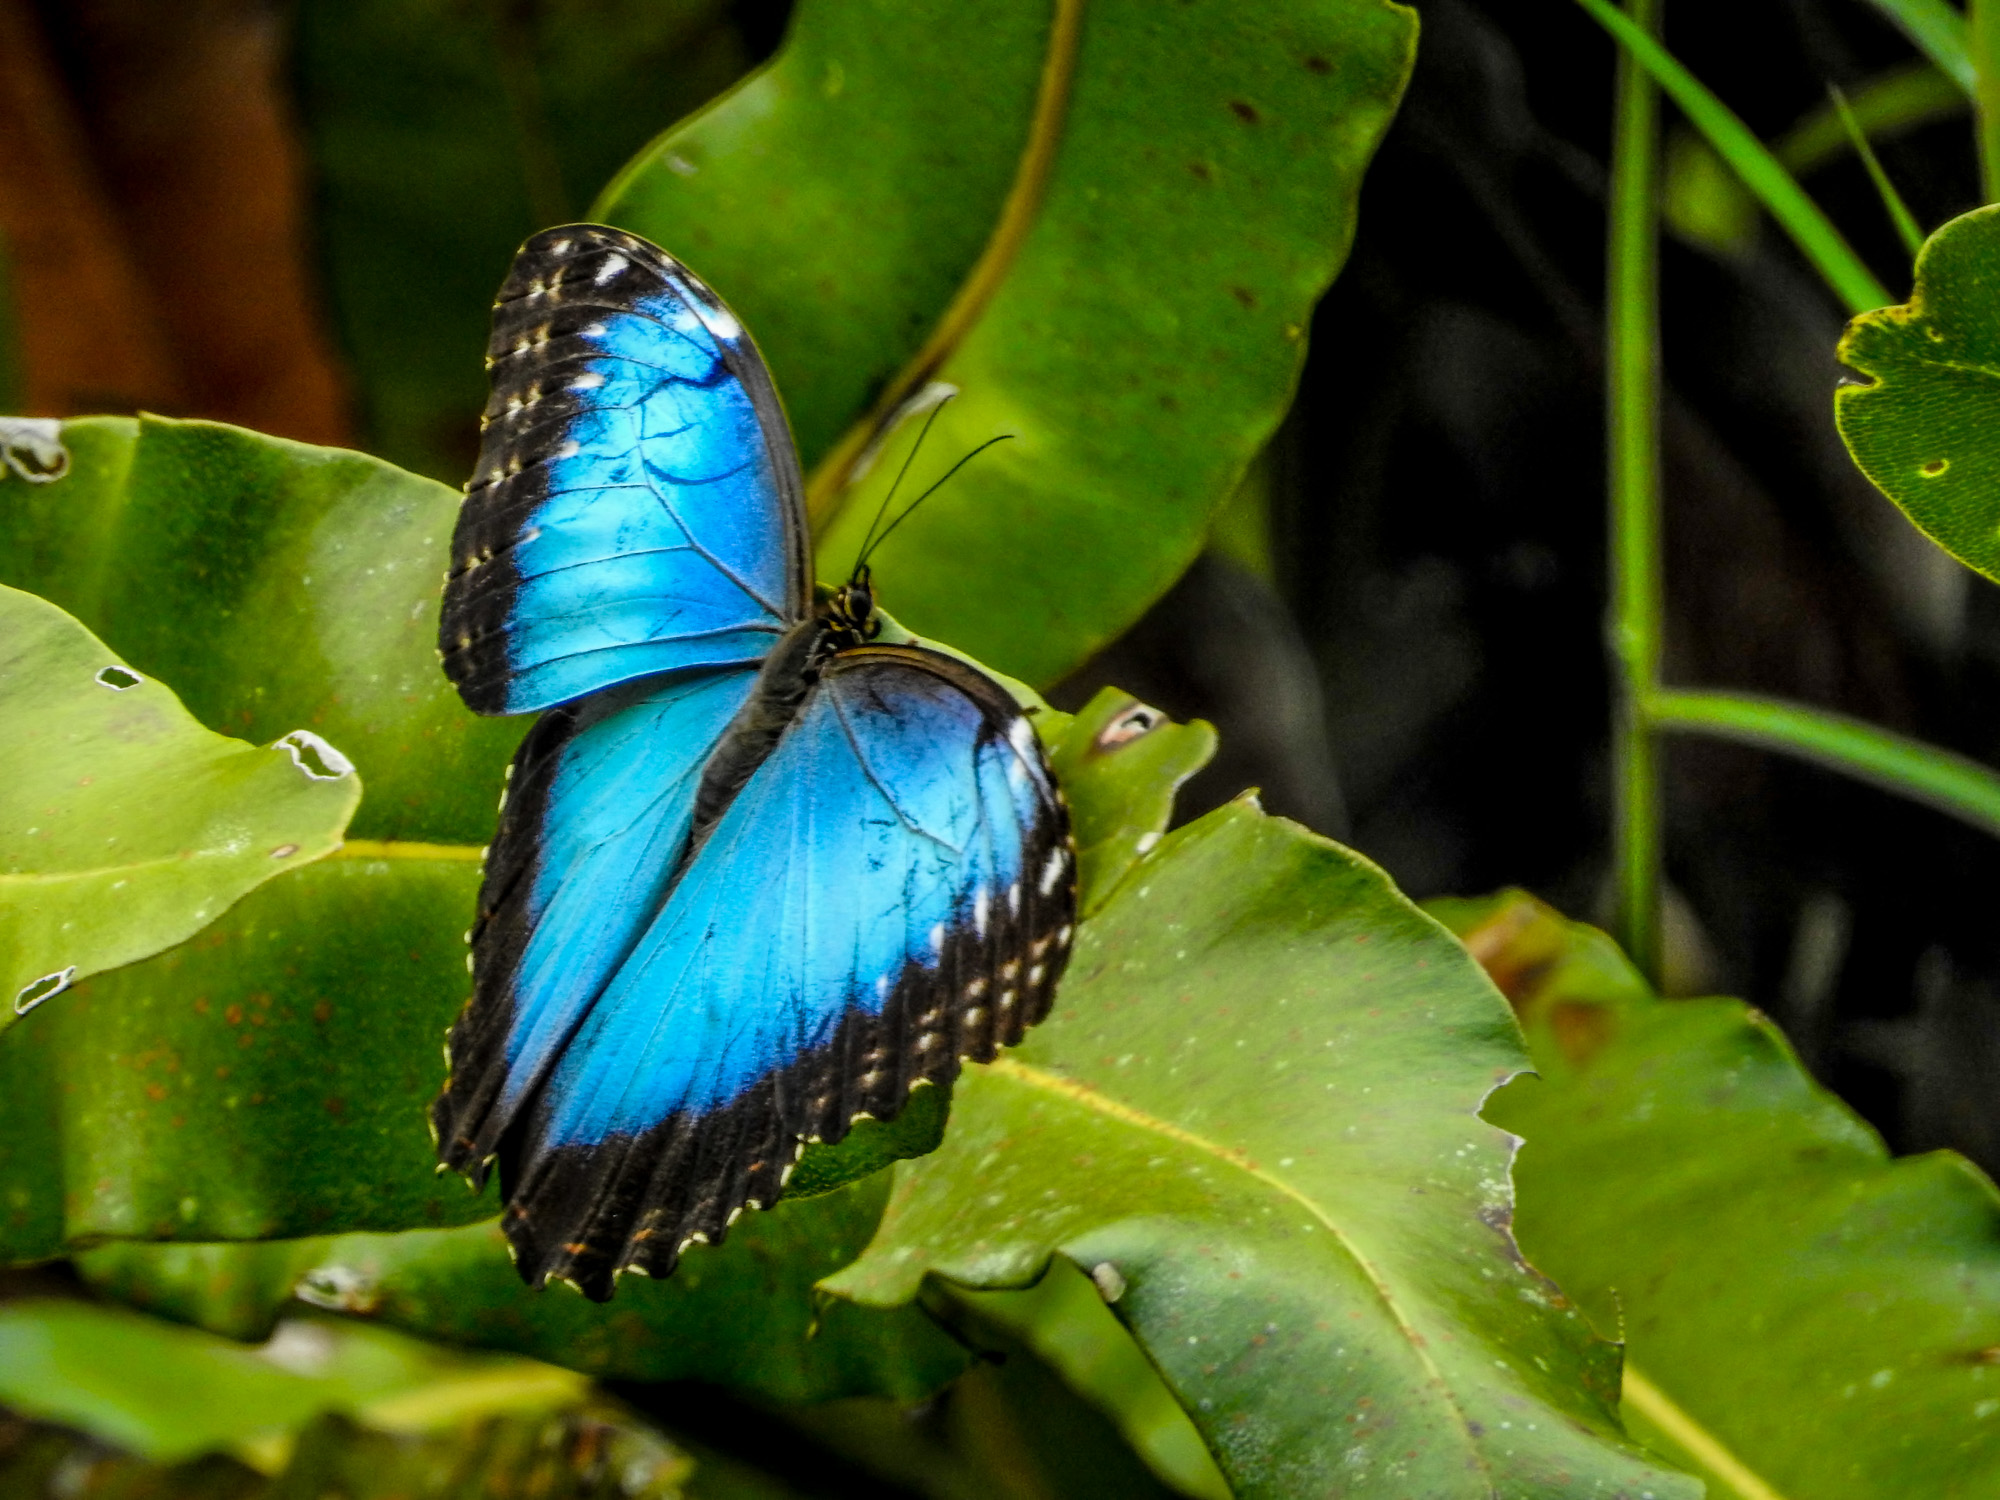 Blue Morpho Butterfly, Bocas del Toro, Panama. Tranquilo Bay Lodge excursion